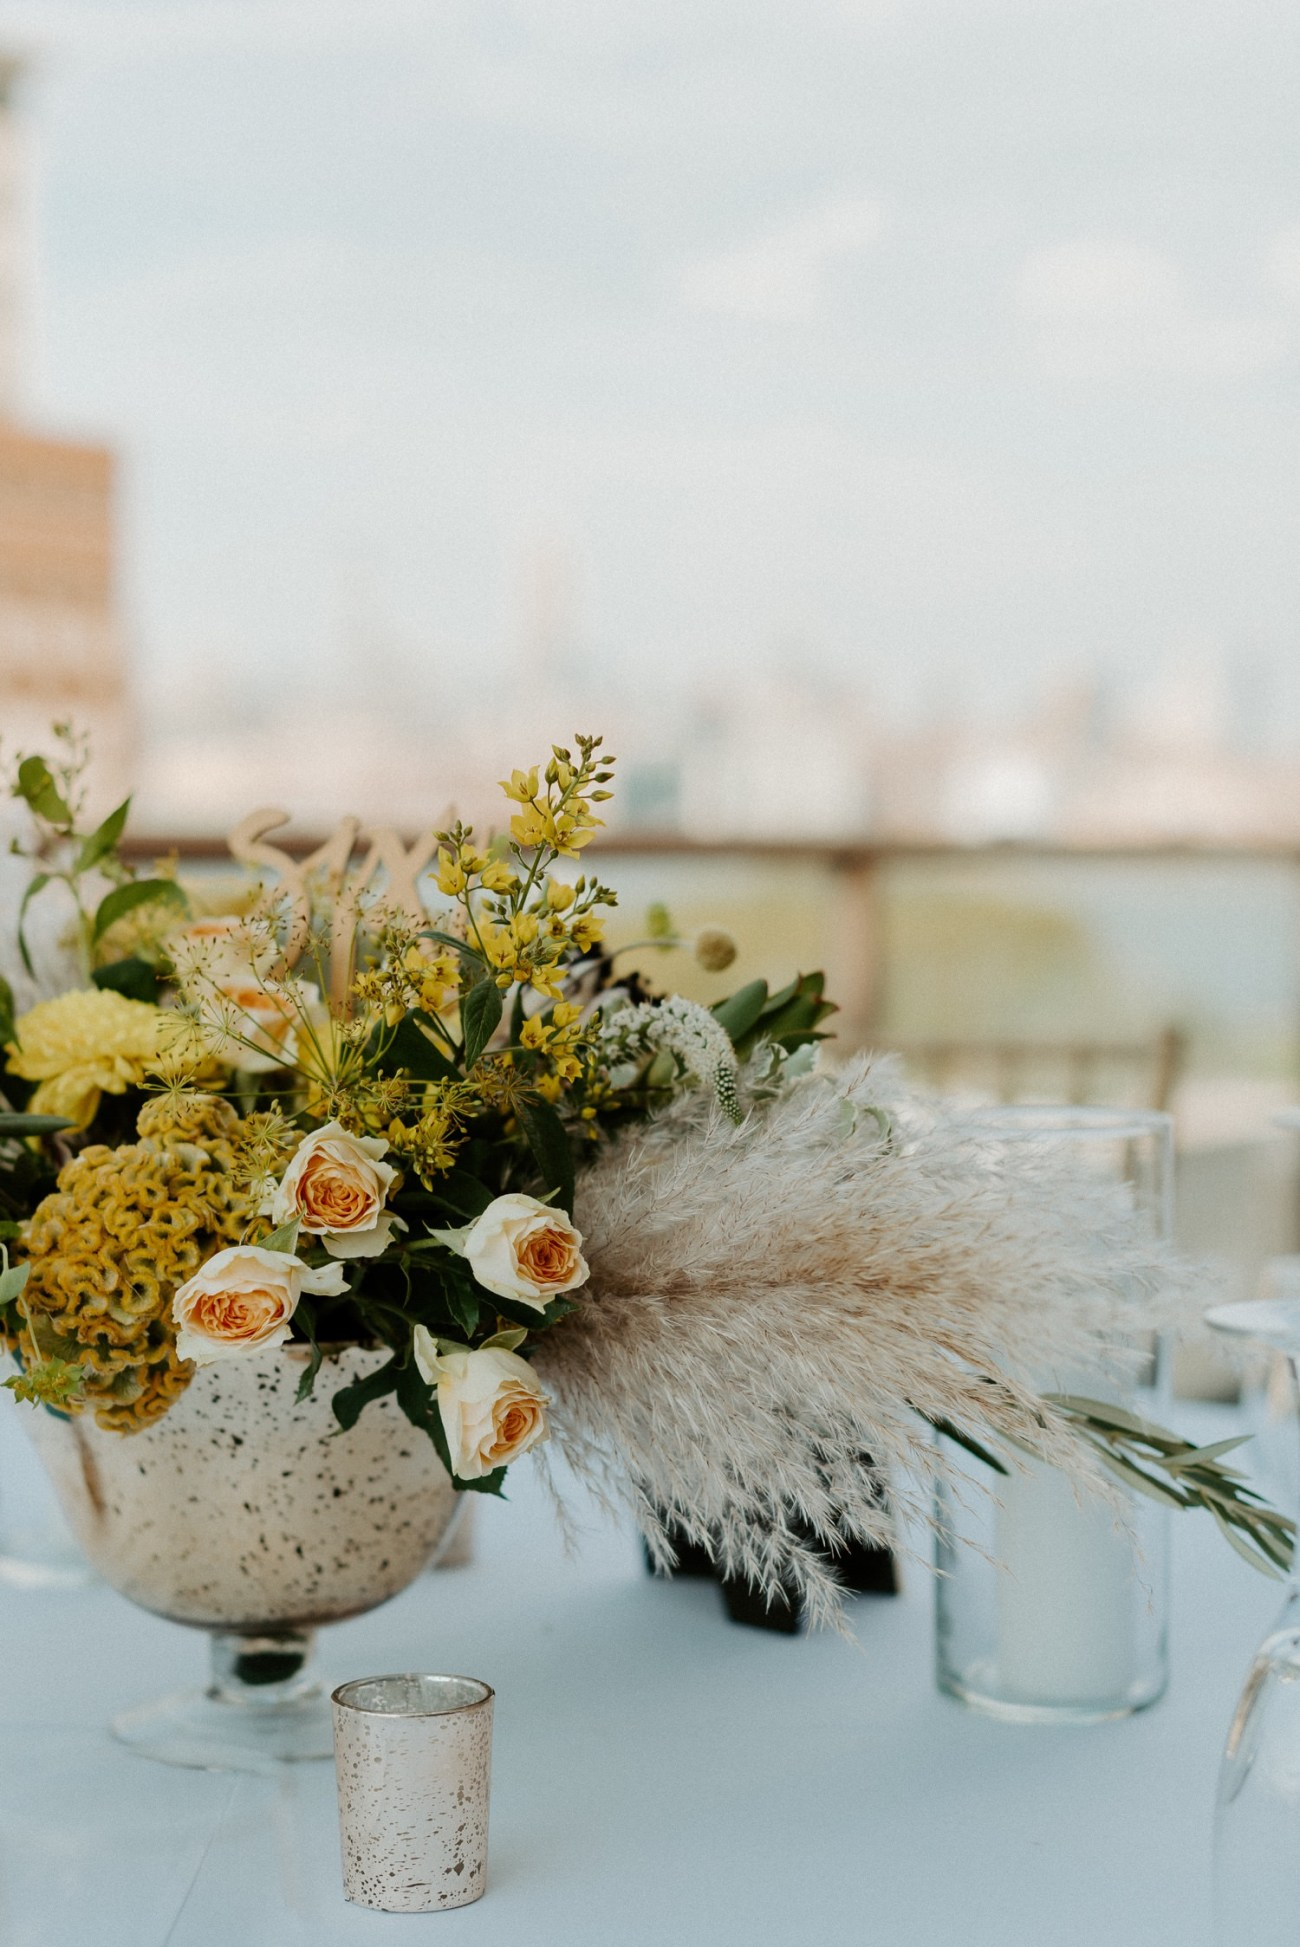 Antique Loft Hoboken Wedding New Jersey Wedding Photographer Anais Possamai Photography 078